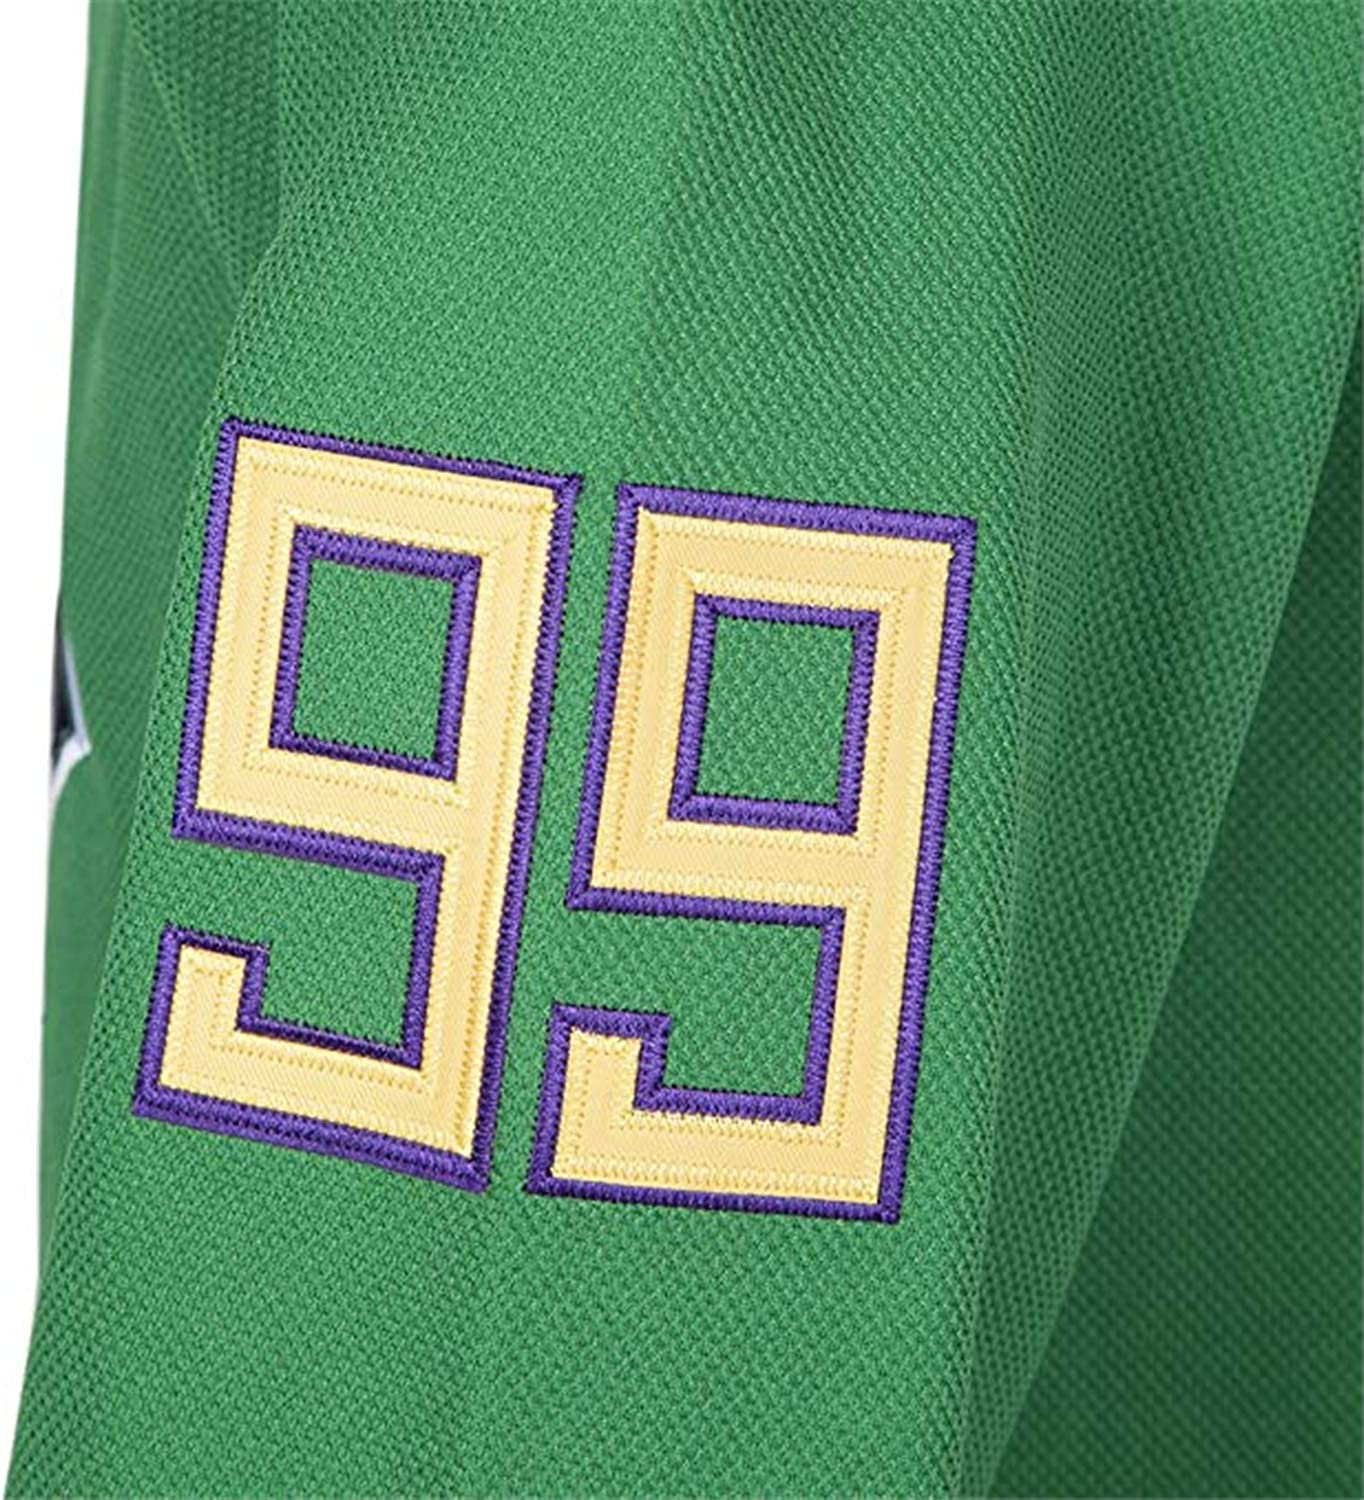 Banks 99 The Mighty Ducks Jersey S-XXXL Green White 90S Hip Hop Clothing Stitched